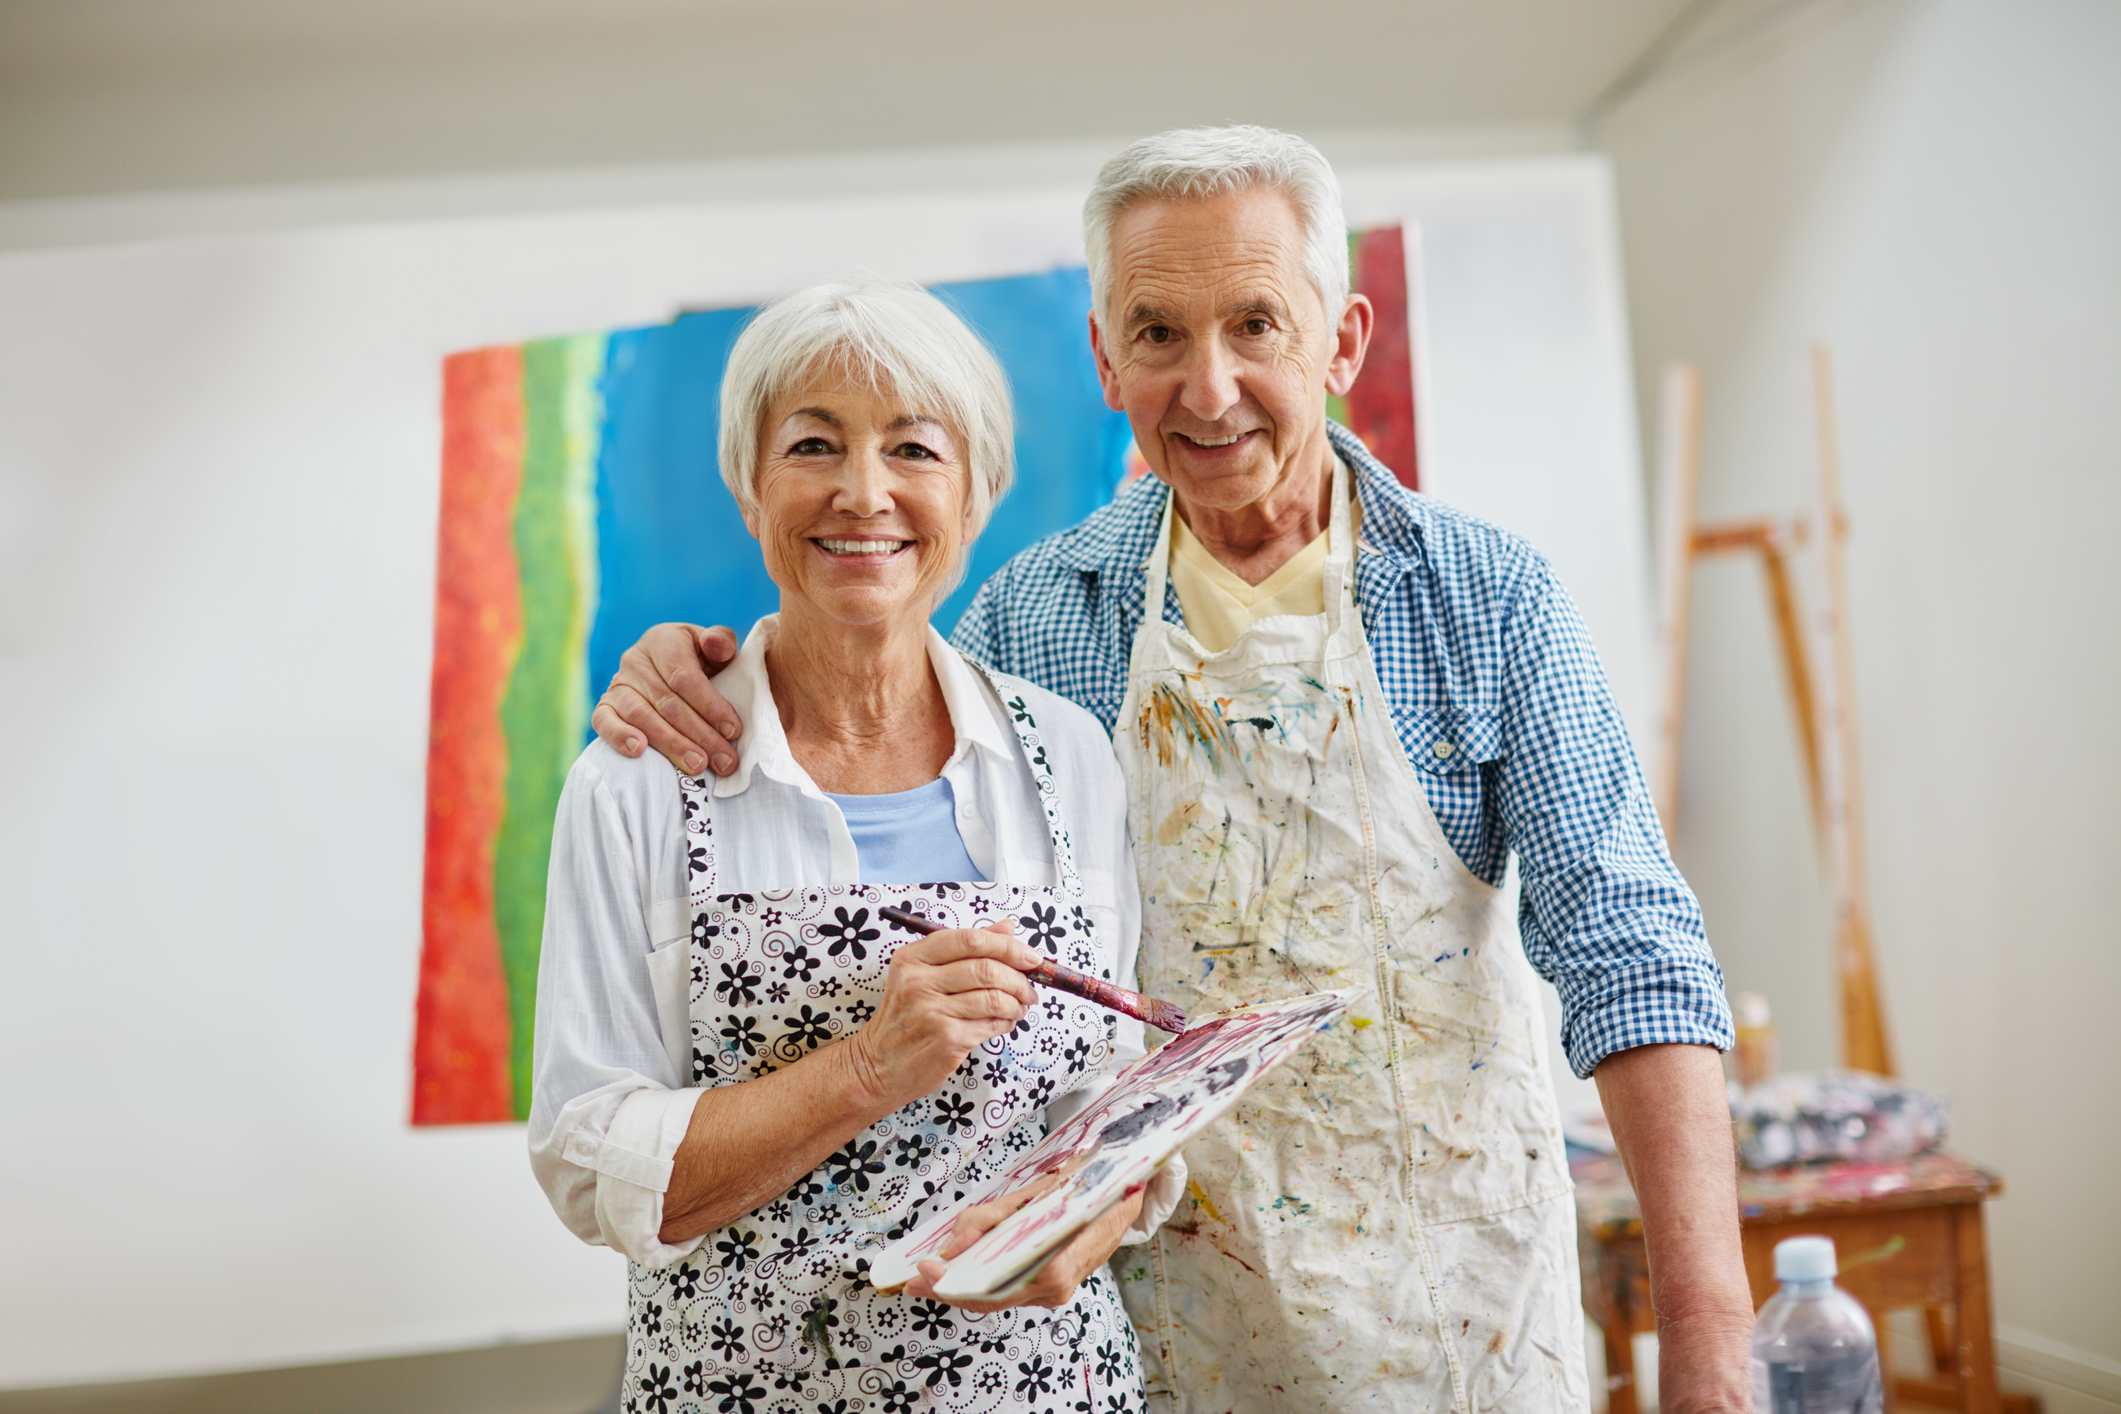 Husband and wife painting together and smiling for a photo